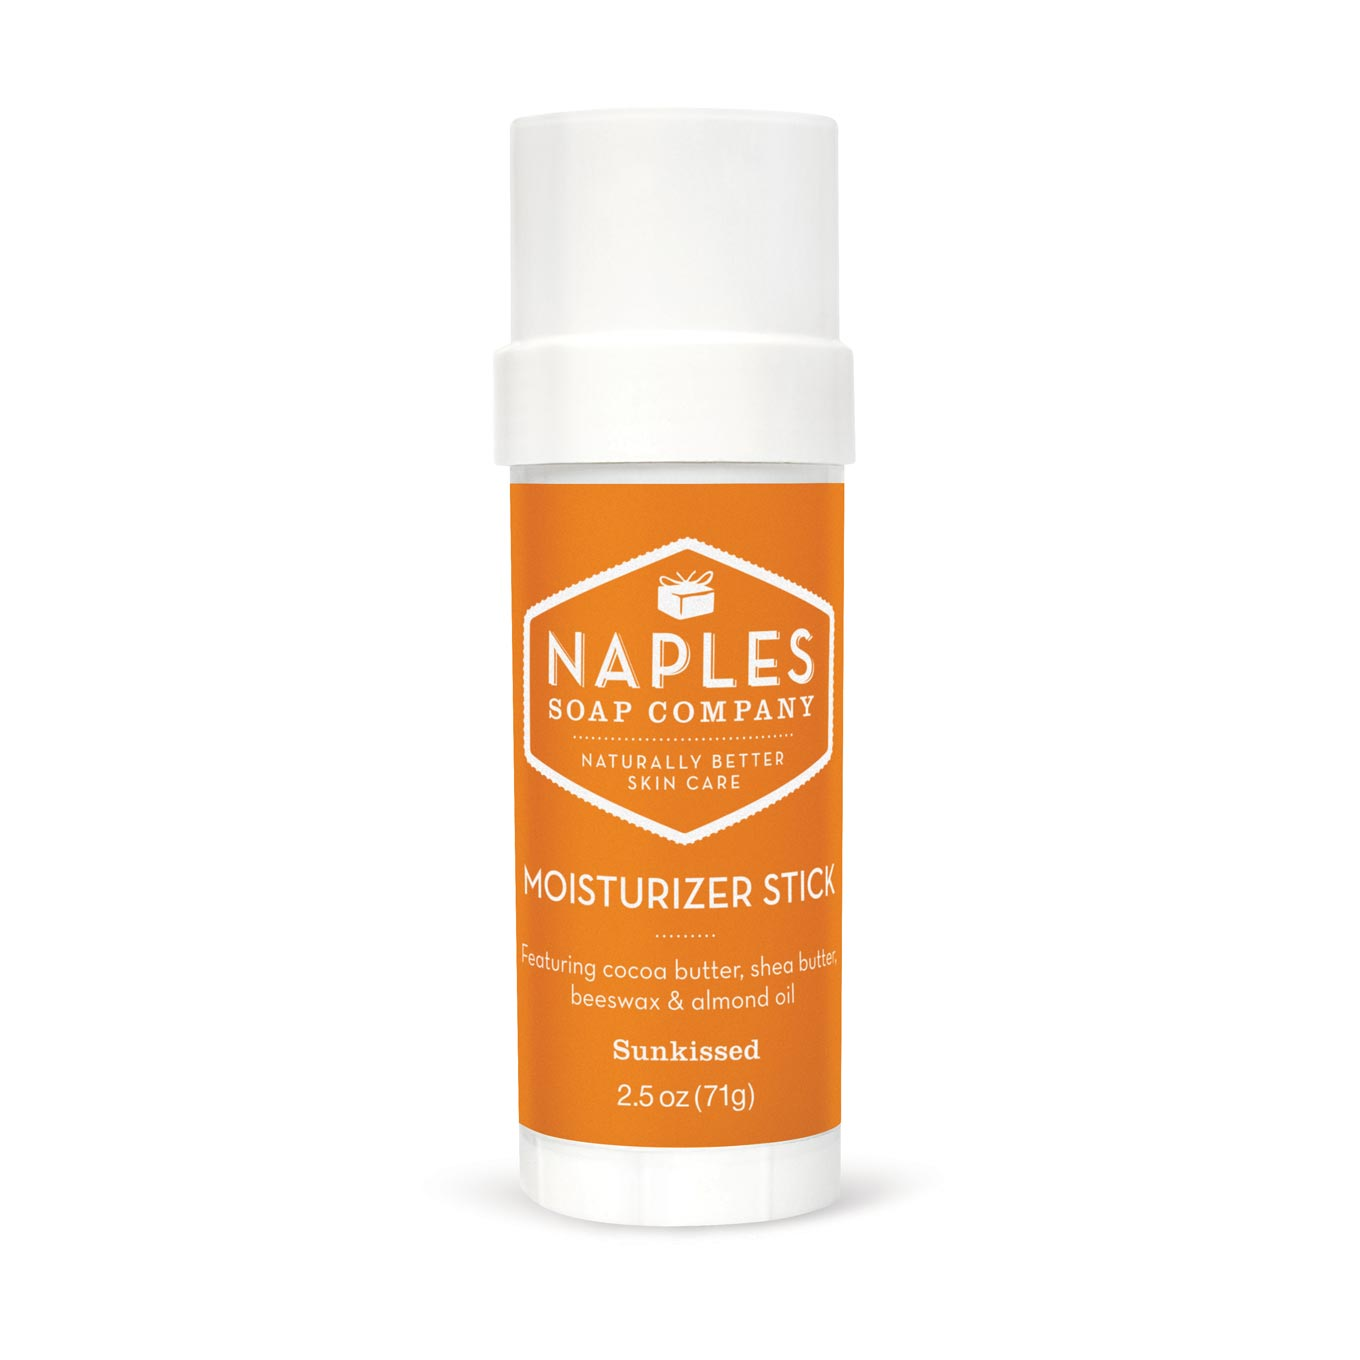 Sunkissed Moisturizer Stick by Naples Soap Company